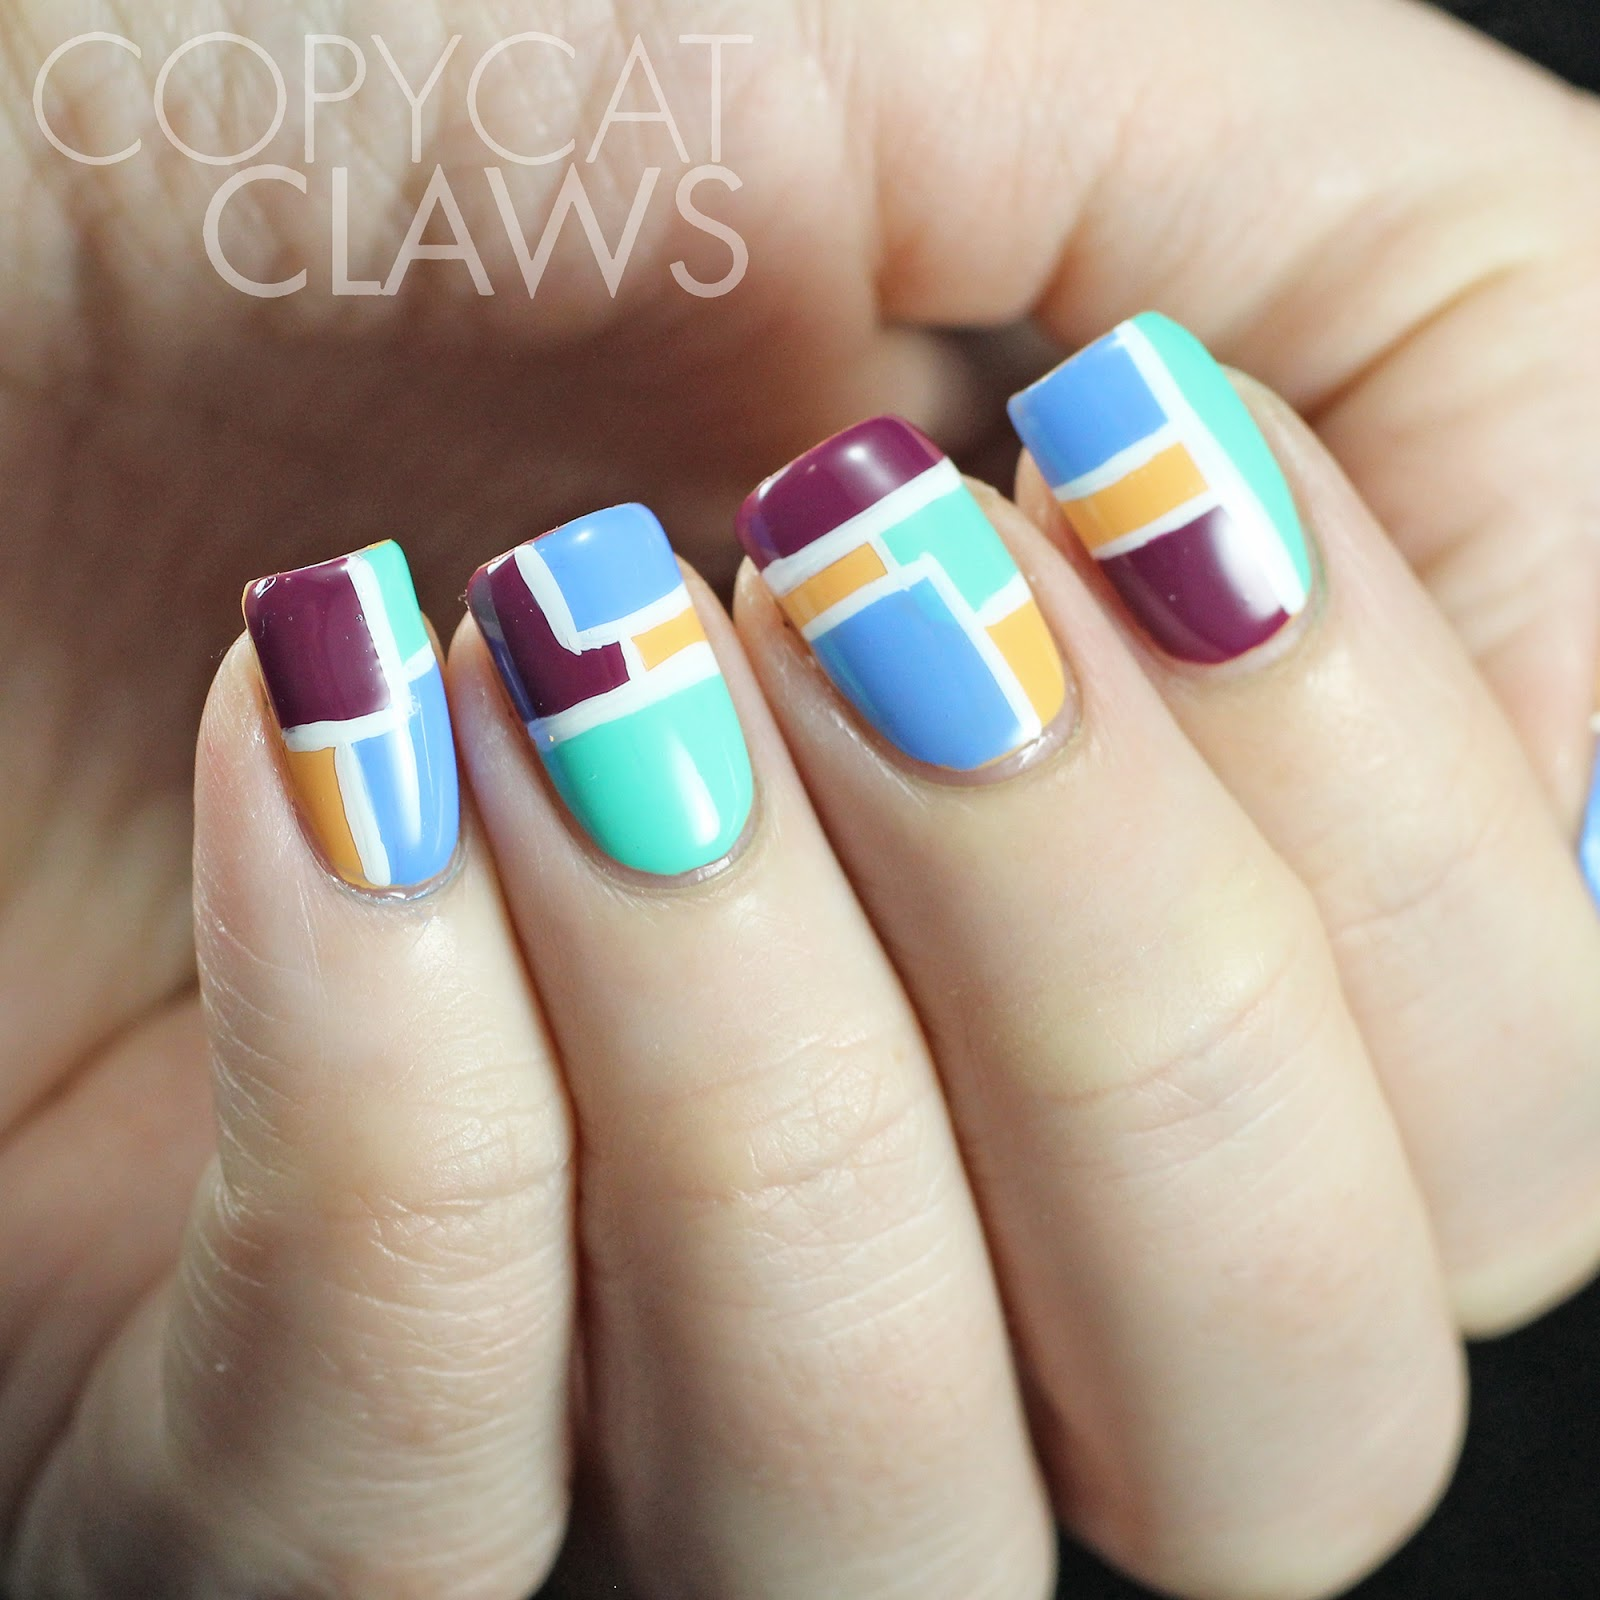 Copycat Claws Blue Color Block Nail Art